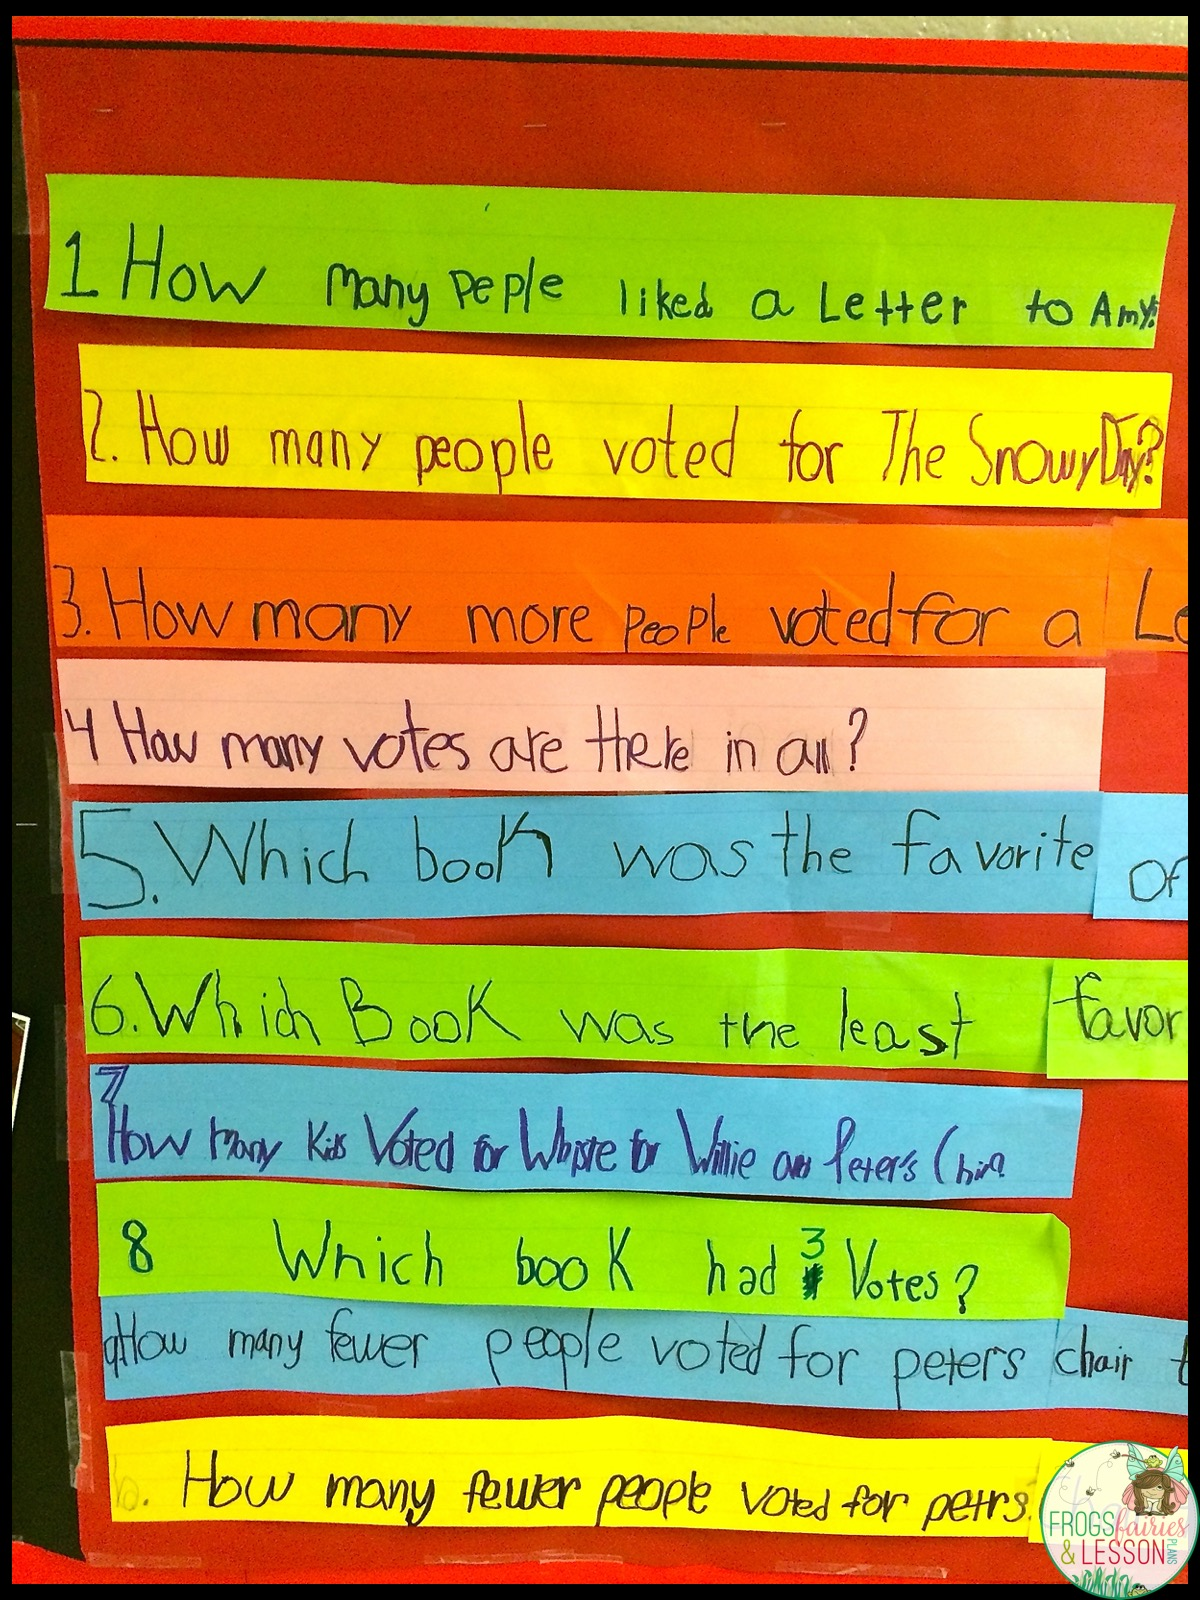 Questions that the students generated in pairs.